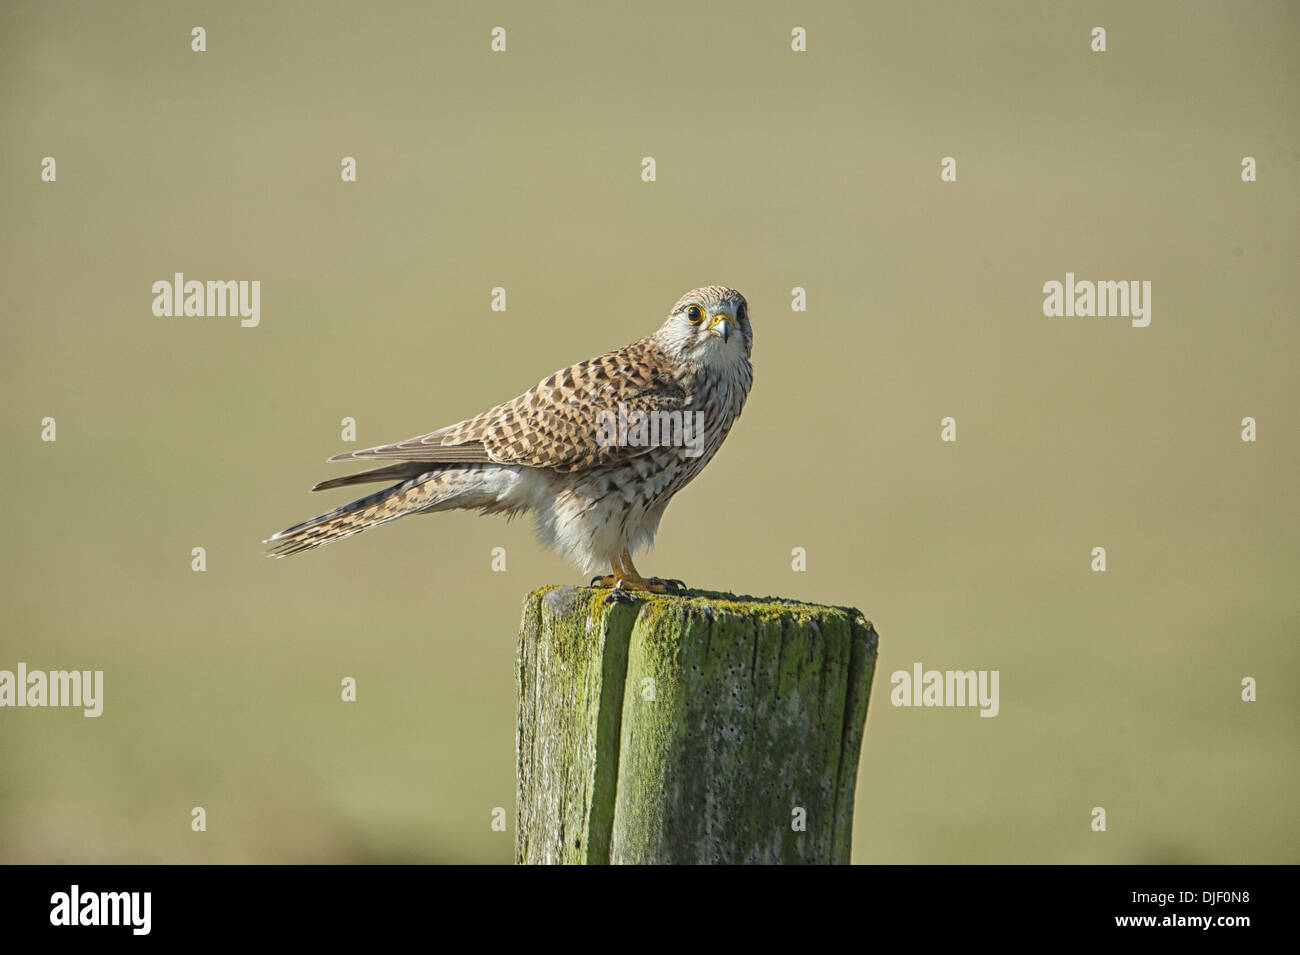 Kestrel (Falco tinnunculus) female, perched on a post, Elmley Marshes RSPB Reserve, England - Stock Image